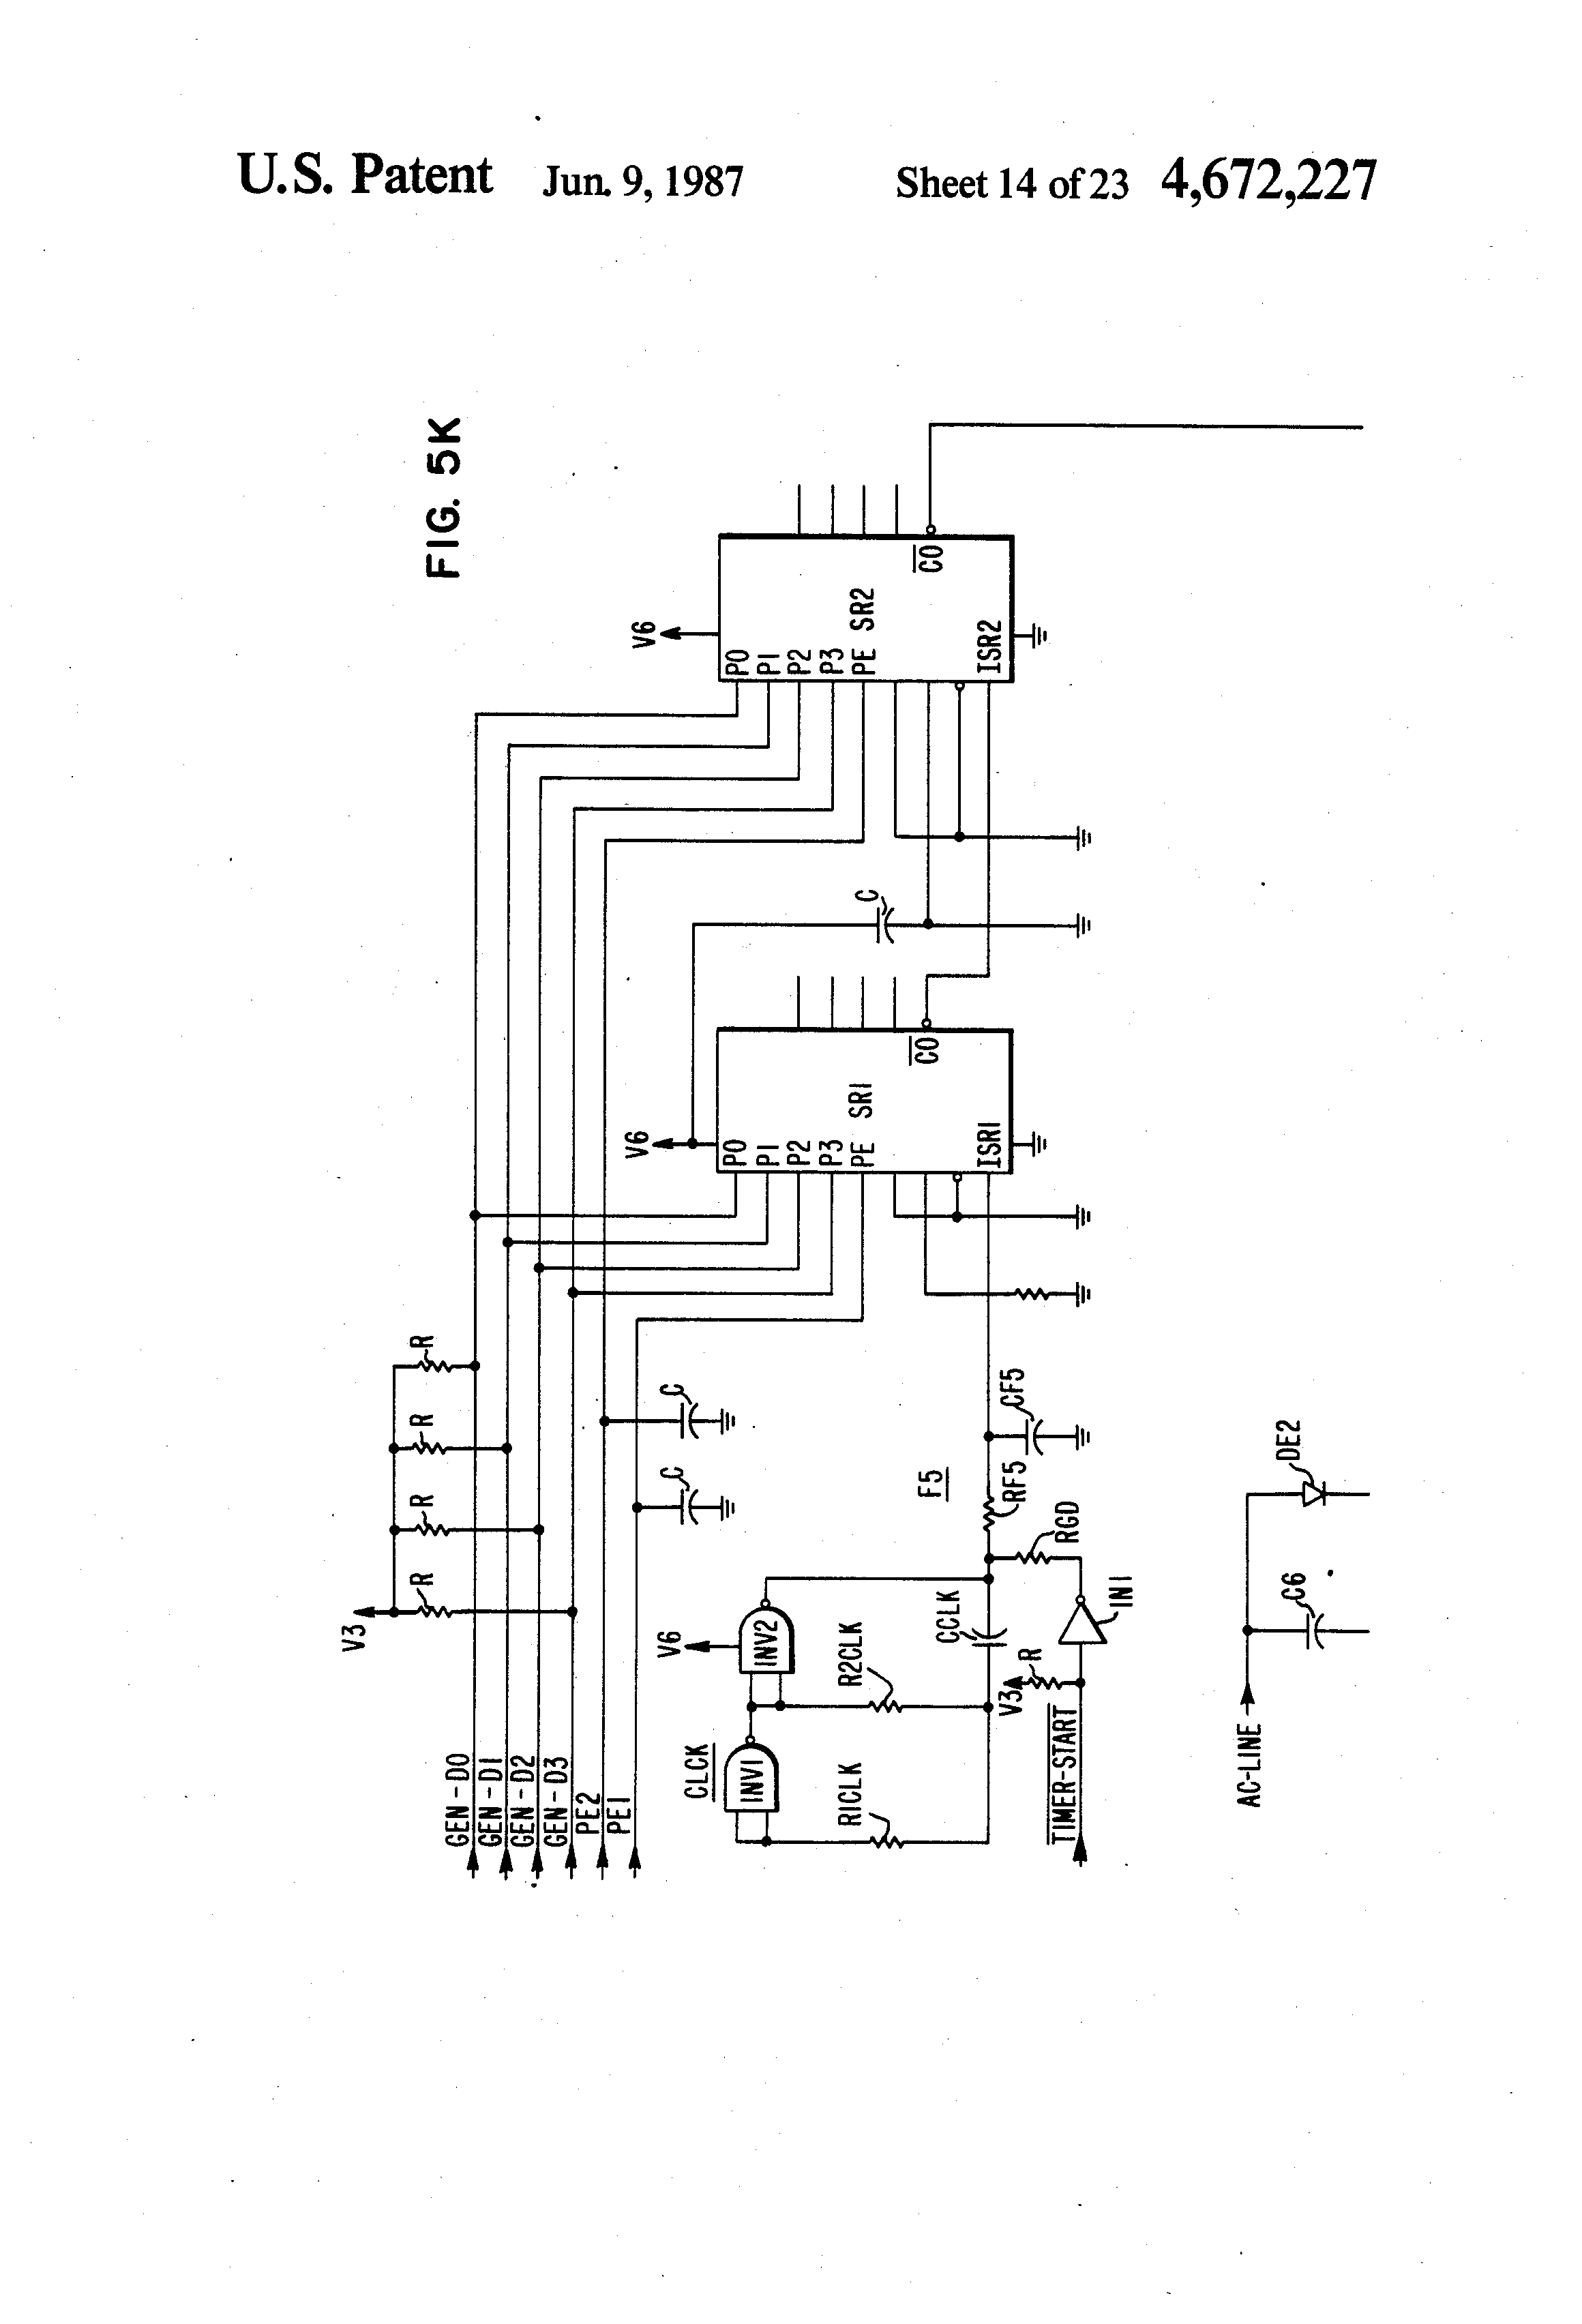 Automatic Transfer Switch Ats Circuit Diagram Ier Full Wave Bridge Rectifier As Well With Delay Google Patents